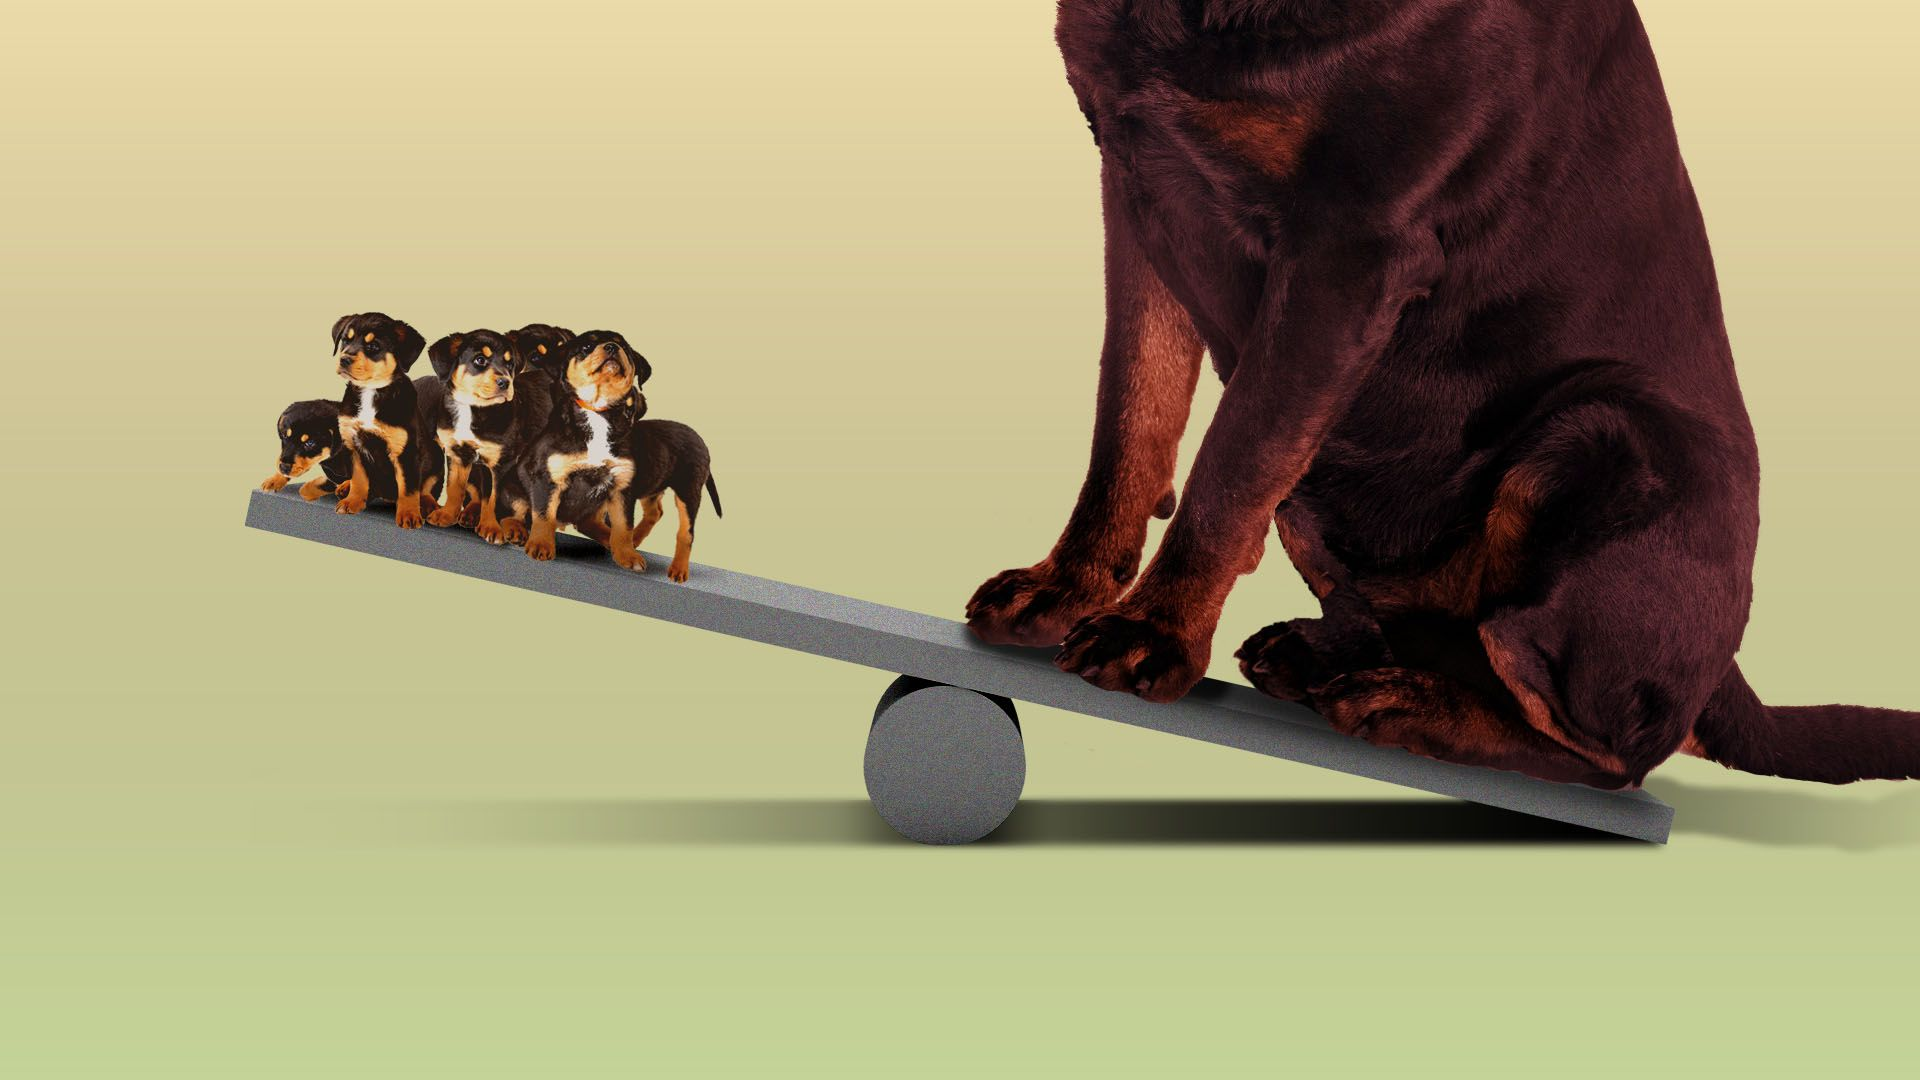 Illustration of a seesaw with a giant dog on one side and a bunch of puppies on the other side